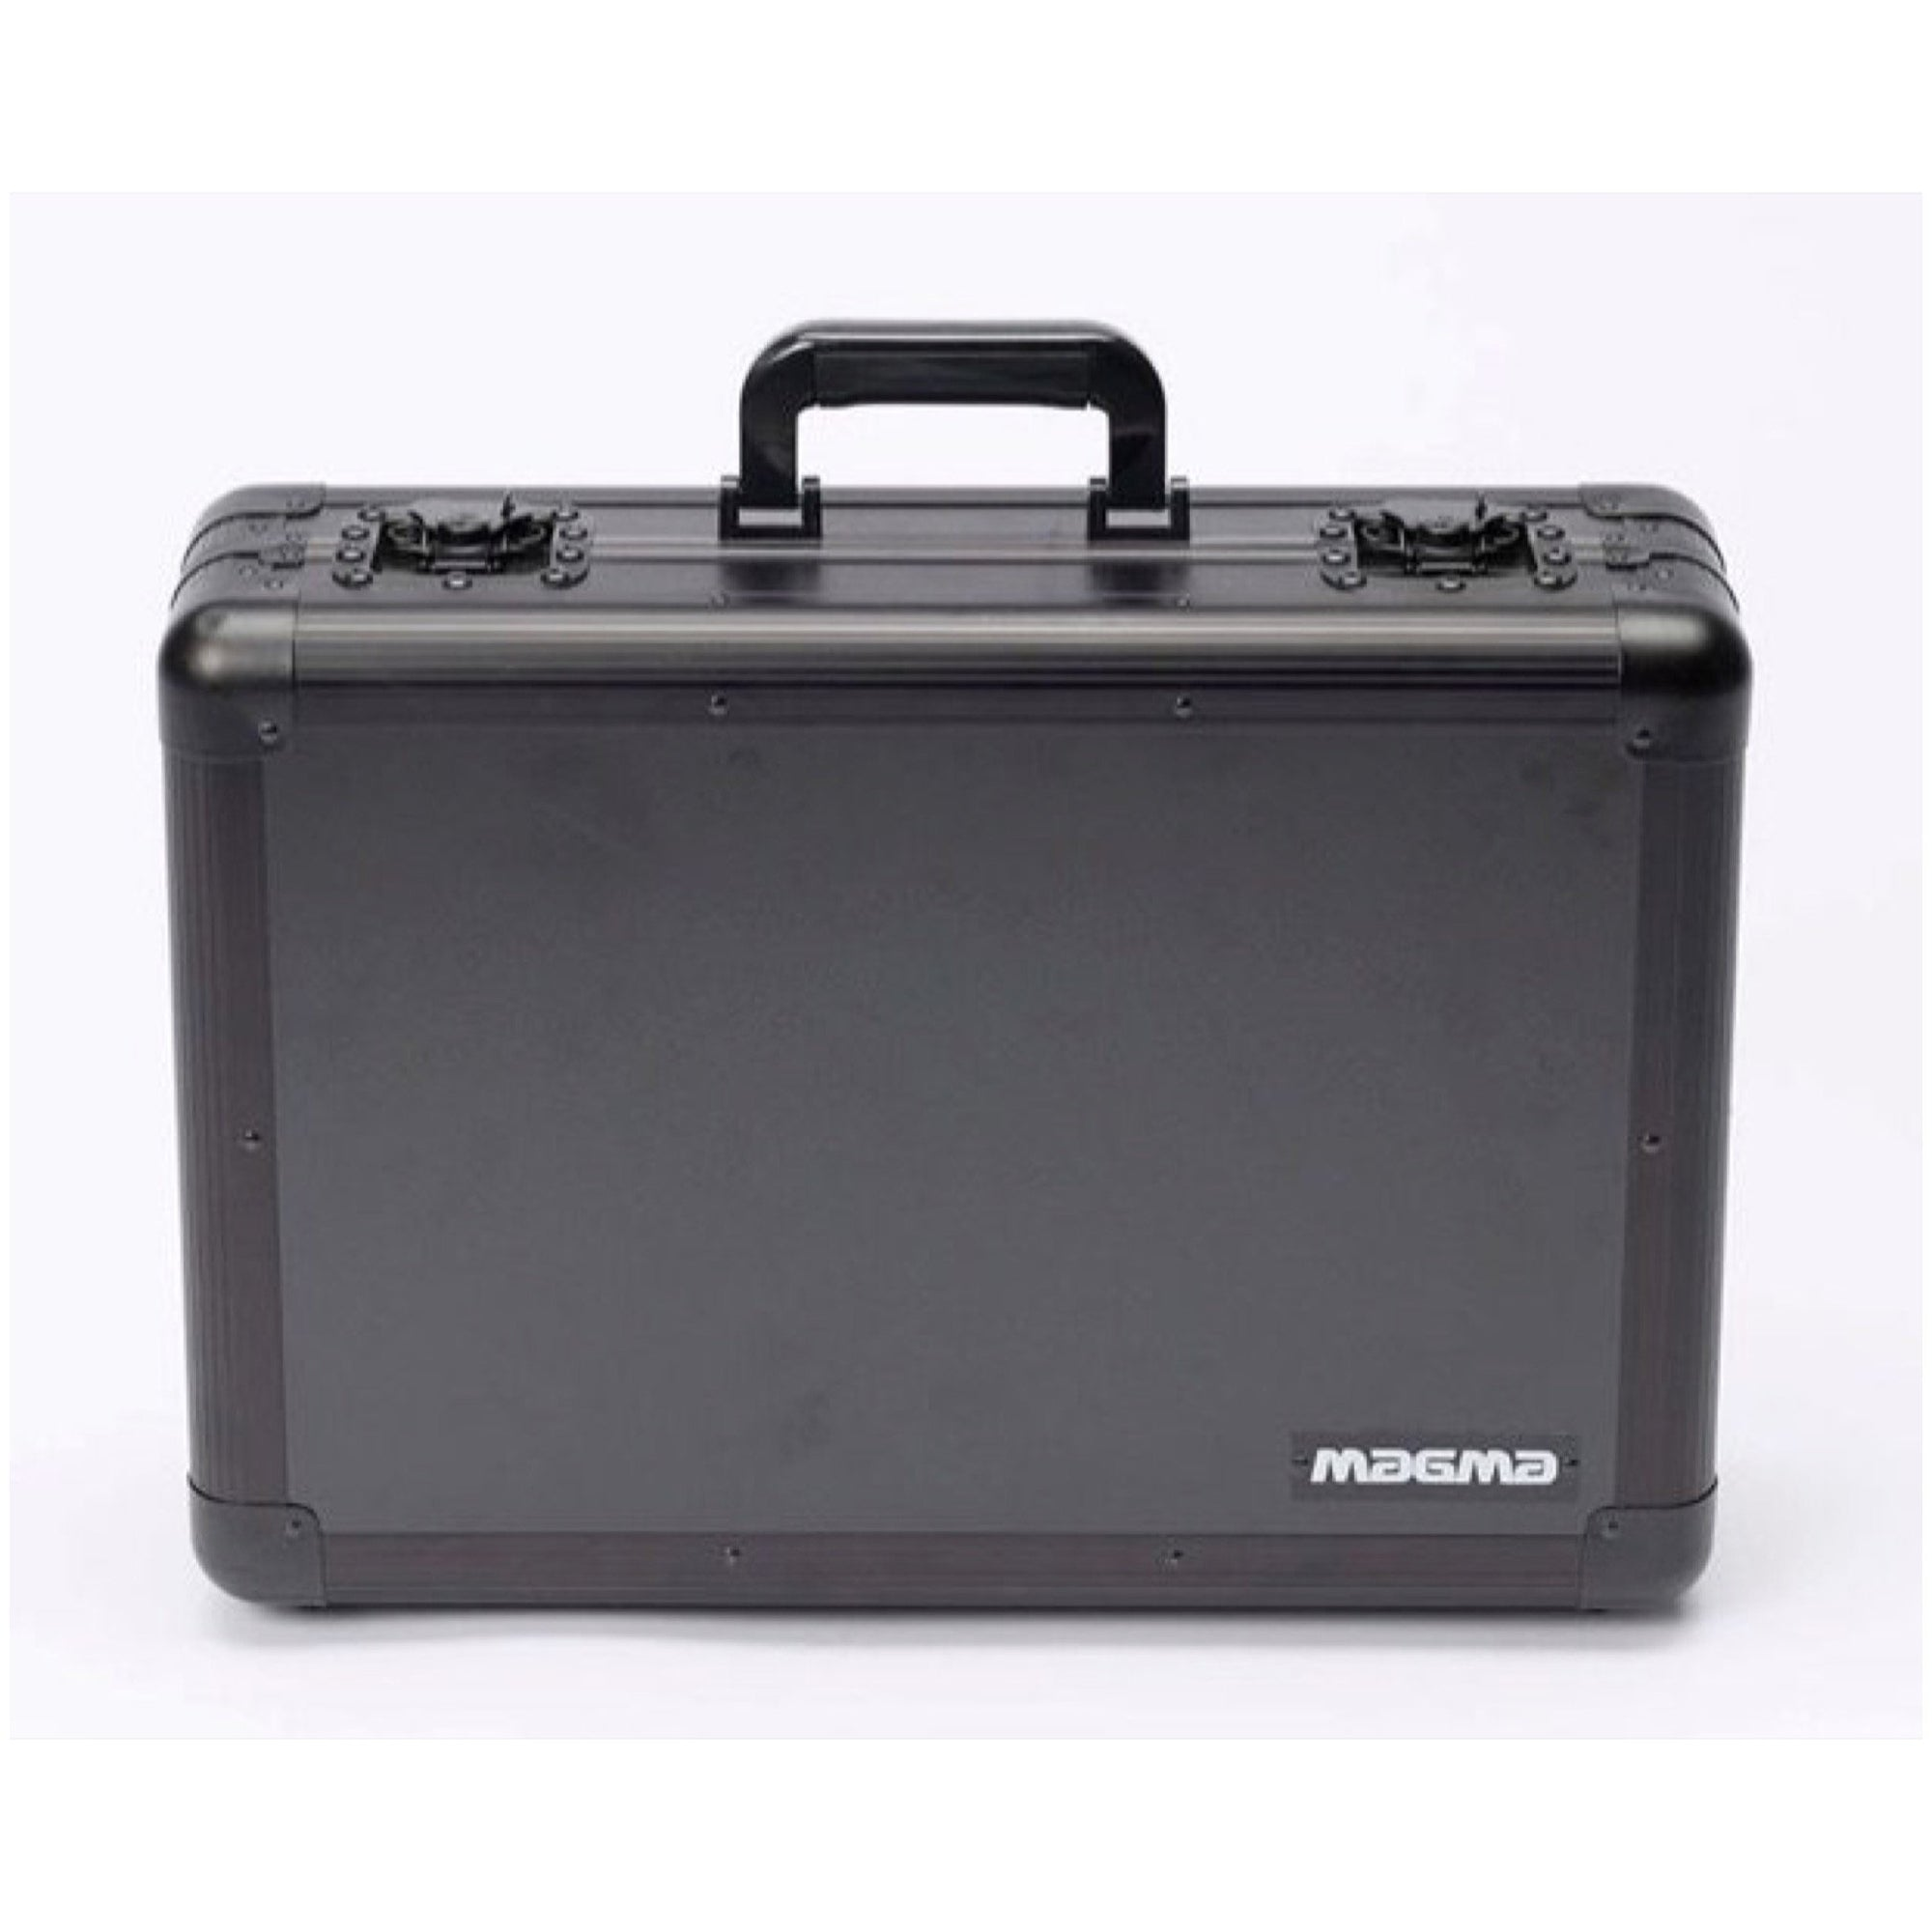 Magma Carry Lite DJ-CASE Controller Case, Large